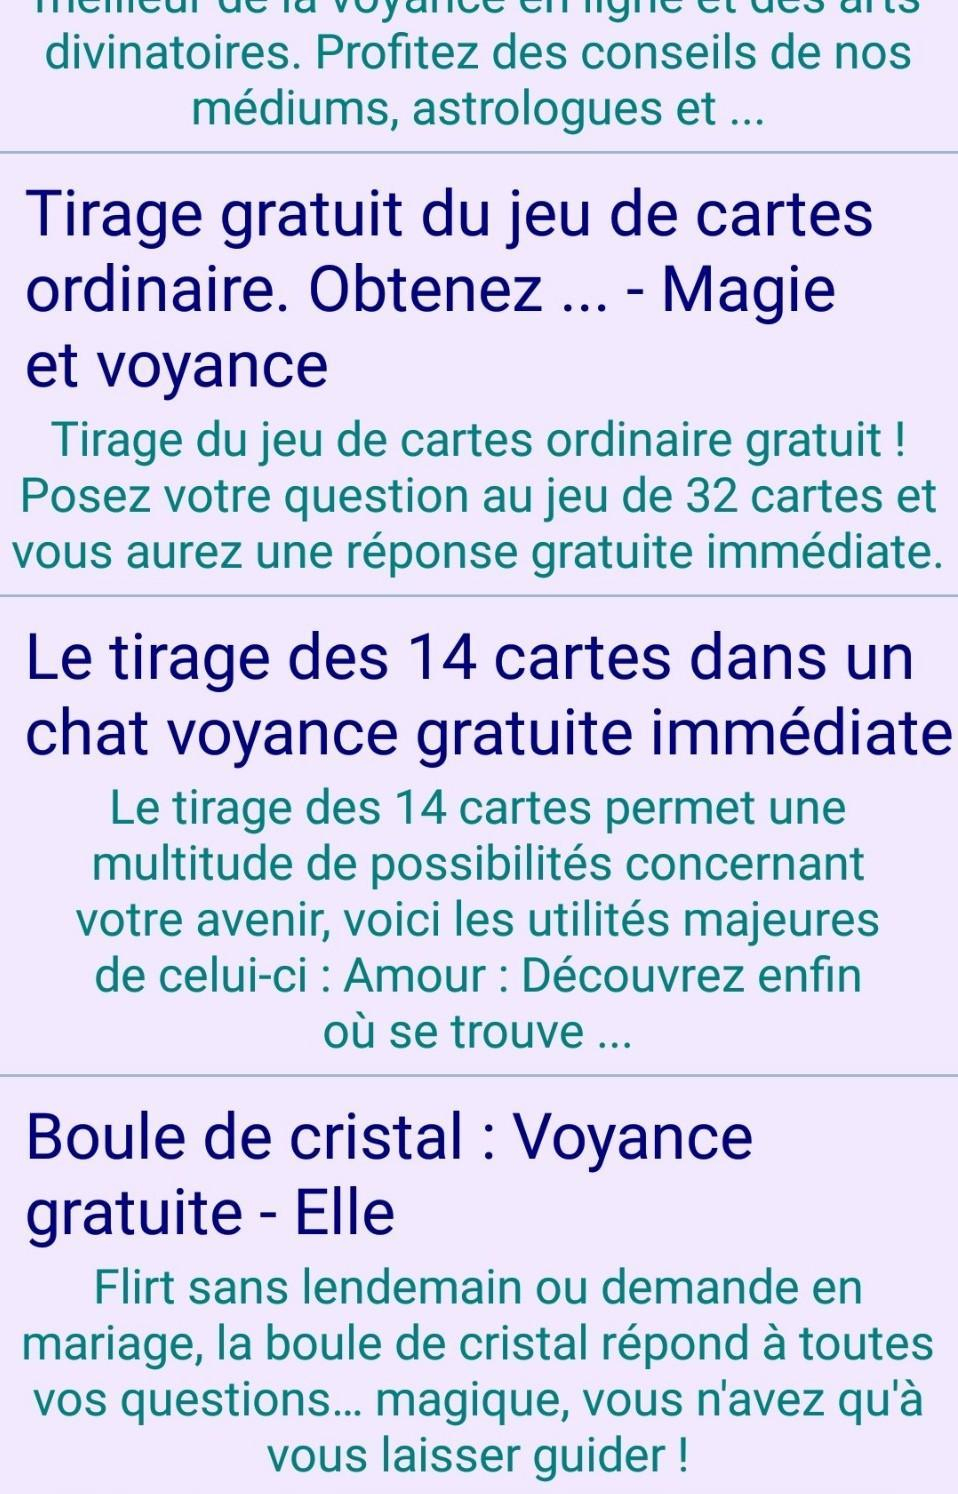 Voyance Gratuite Pour De Vrai For Android - Apk Download encequiconcerne Question Reponse Jeu Gratuit